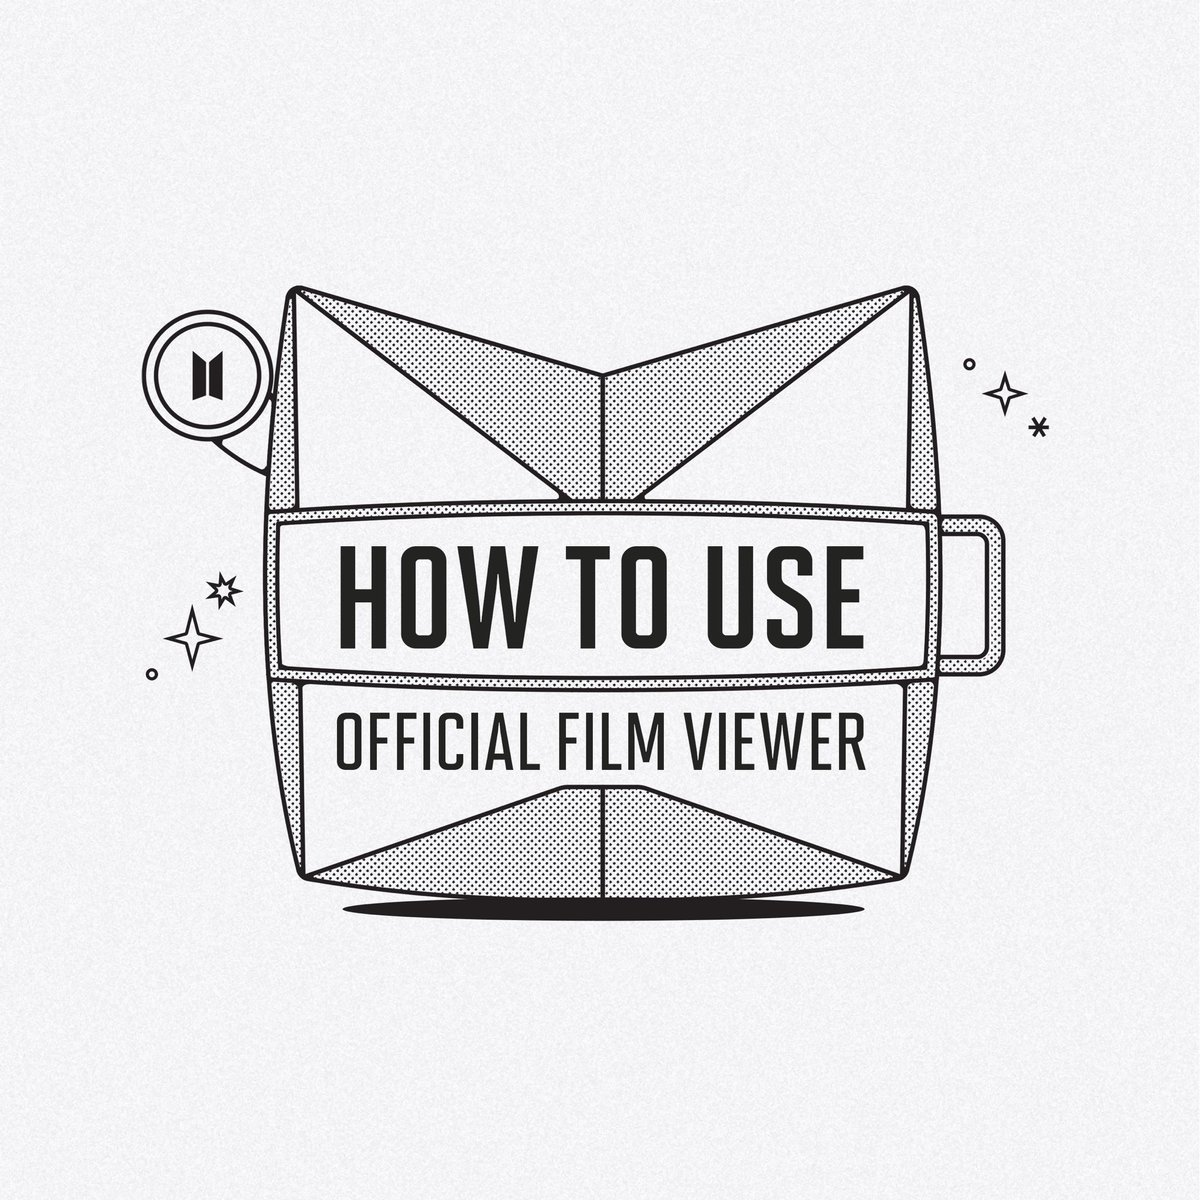 🤗DO & DON'T🤔  #HOW_TO_USE #BTS #OFFICIAL_FILM_VIEWER